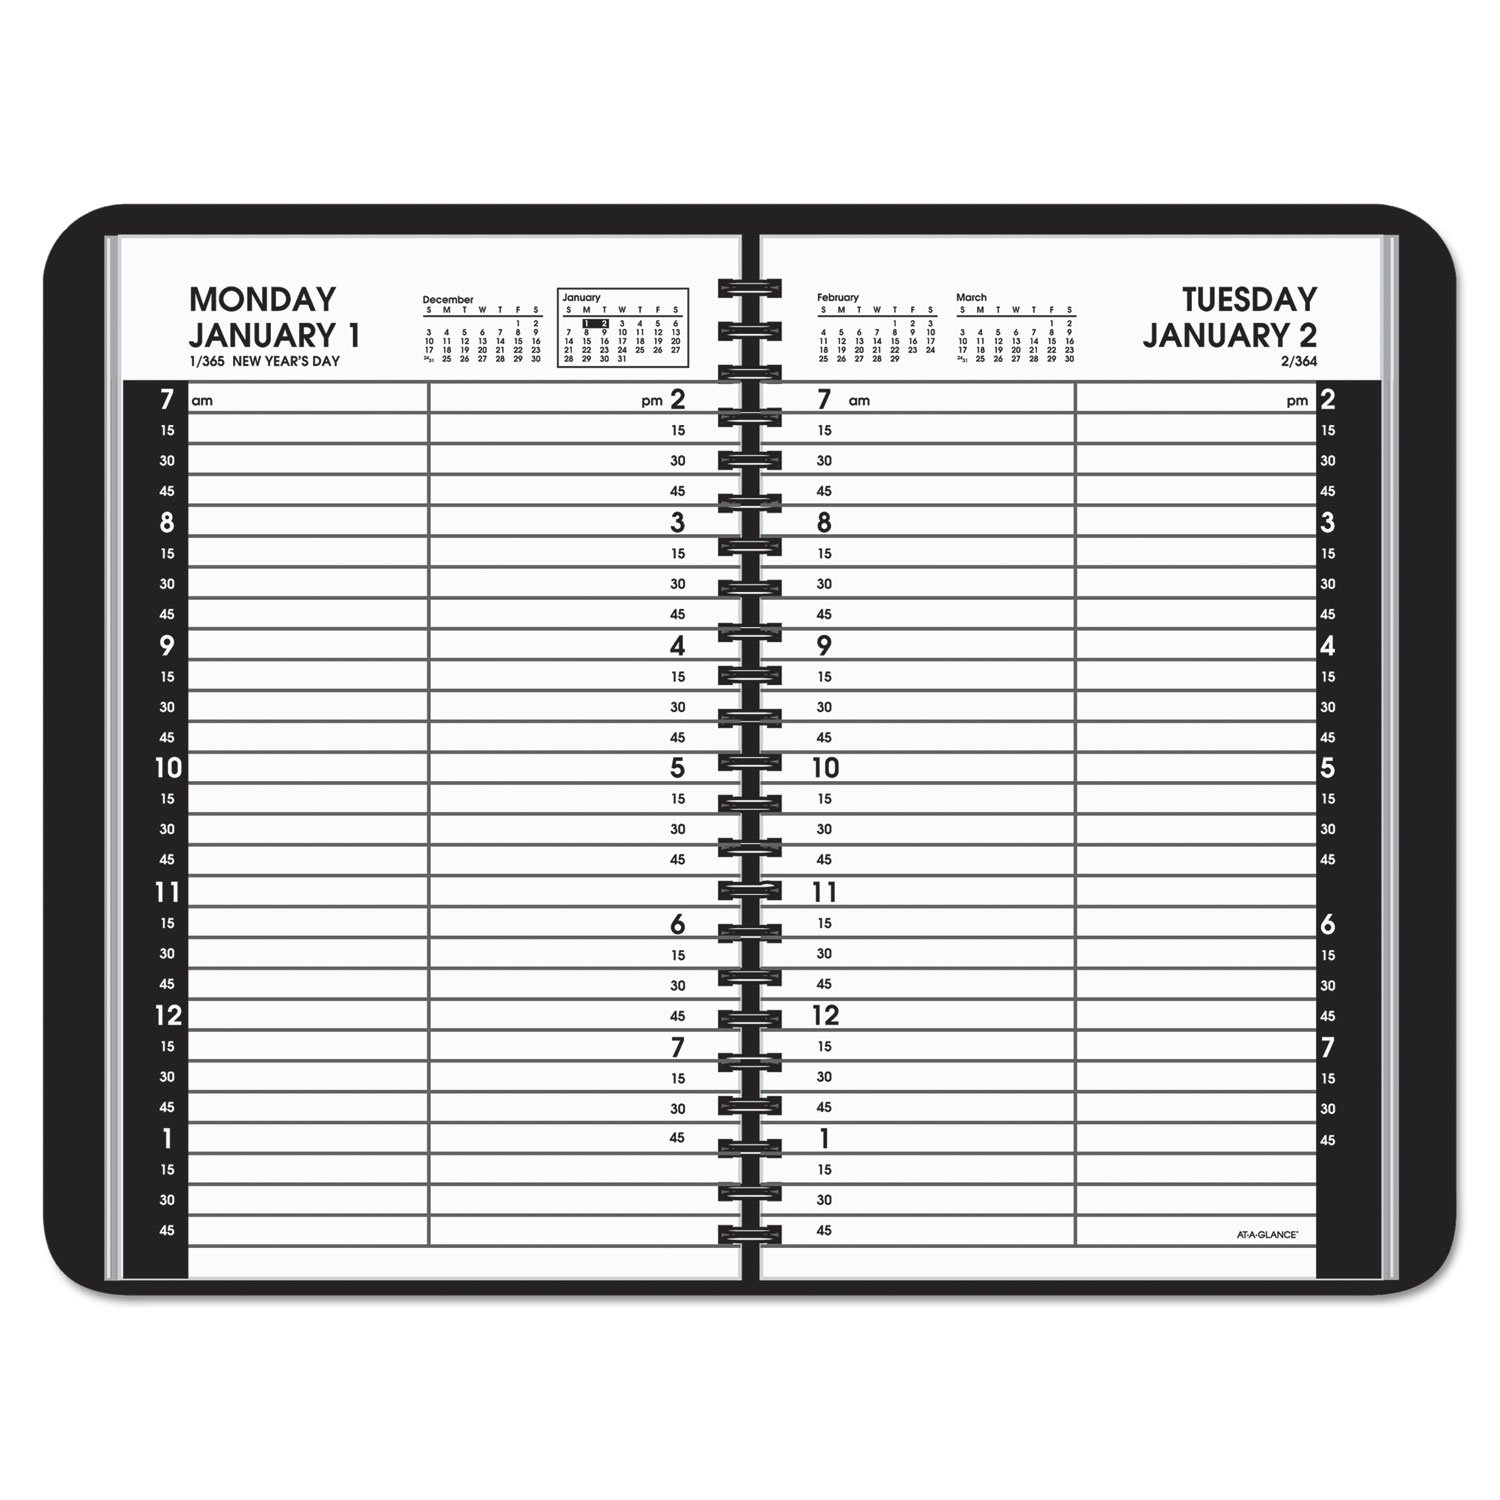 Daily Appointment Book With 15 Minute Appointmentsat A 5 1/2 X 8 1/2 Page Daily Calendar Template Editable